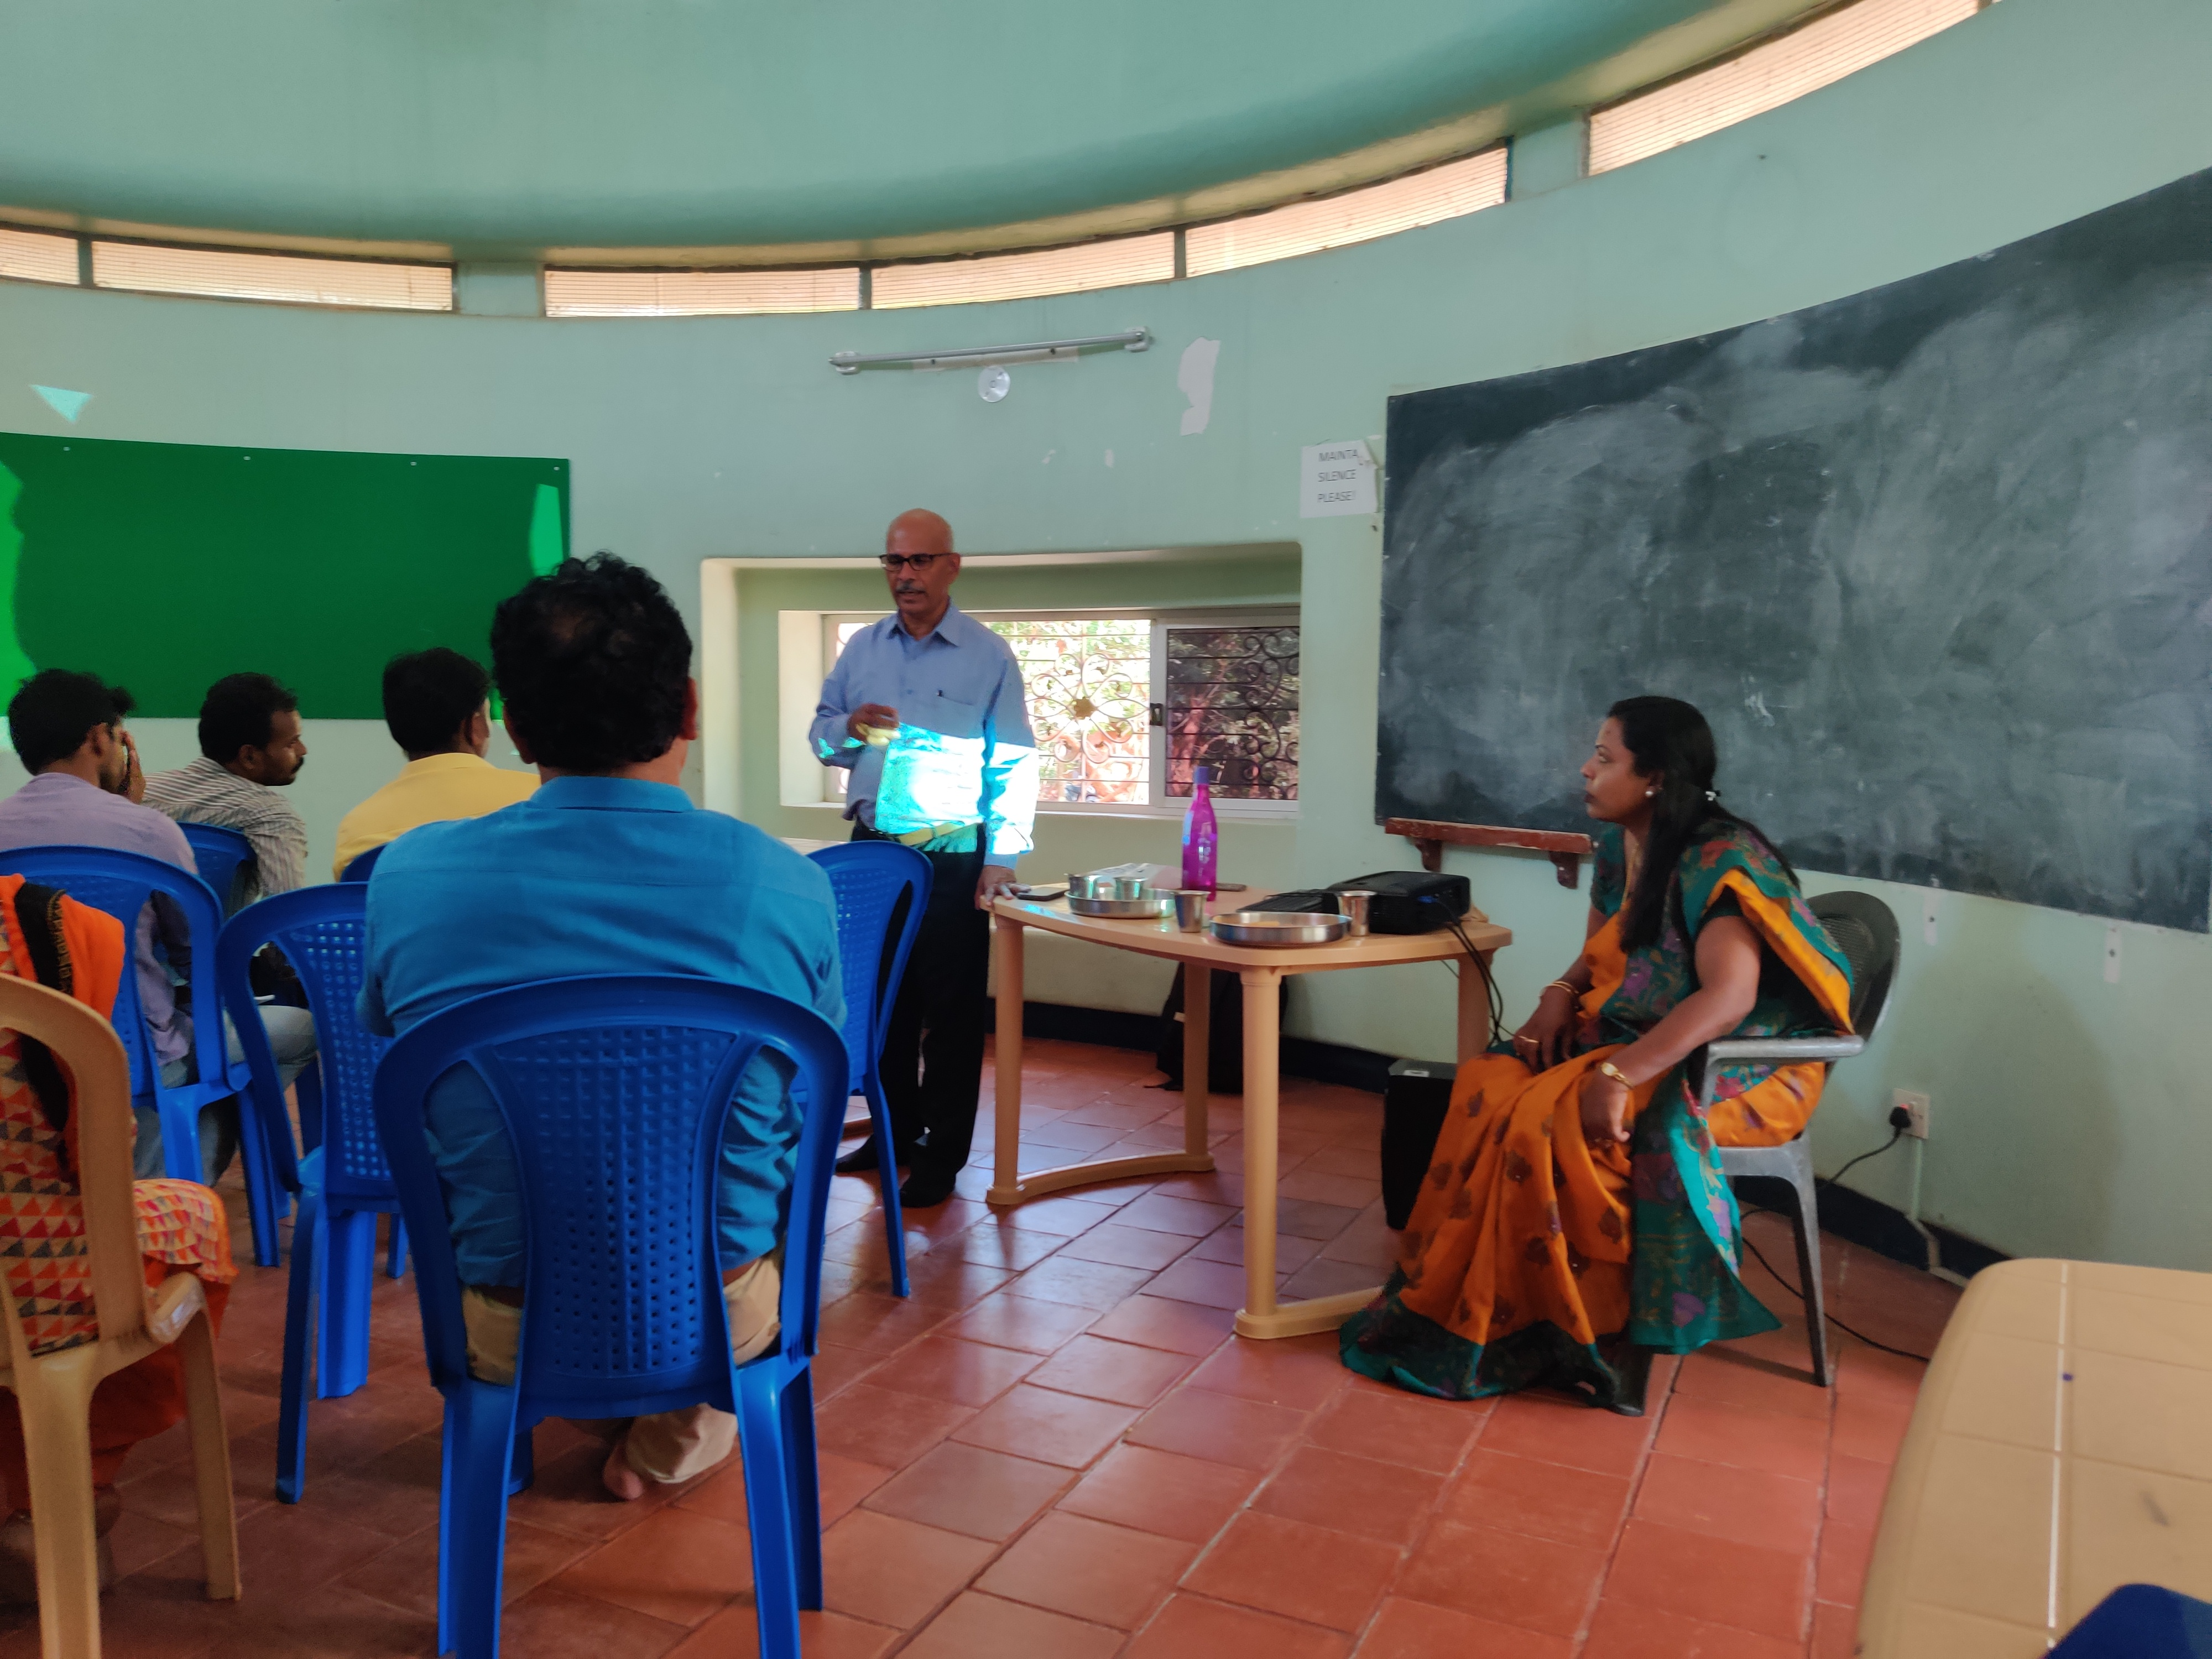 Life skills and adolescent education conducted by Mr. Sathish – Ex-director of Nehru Yuva Kendra Sangathan